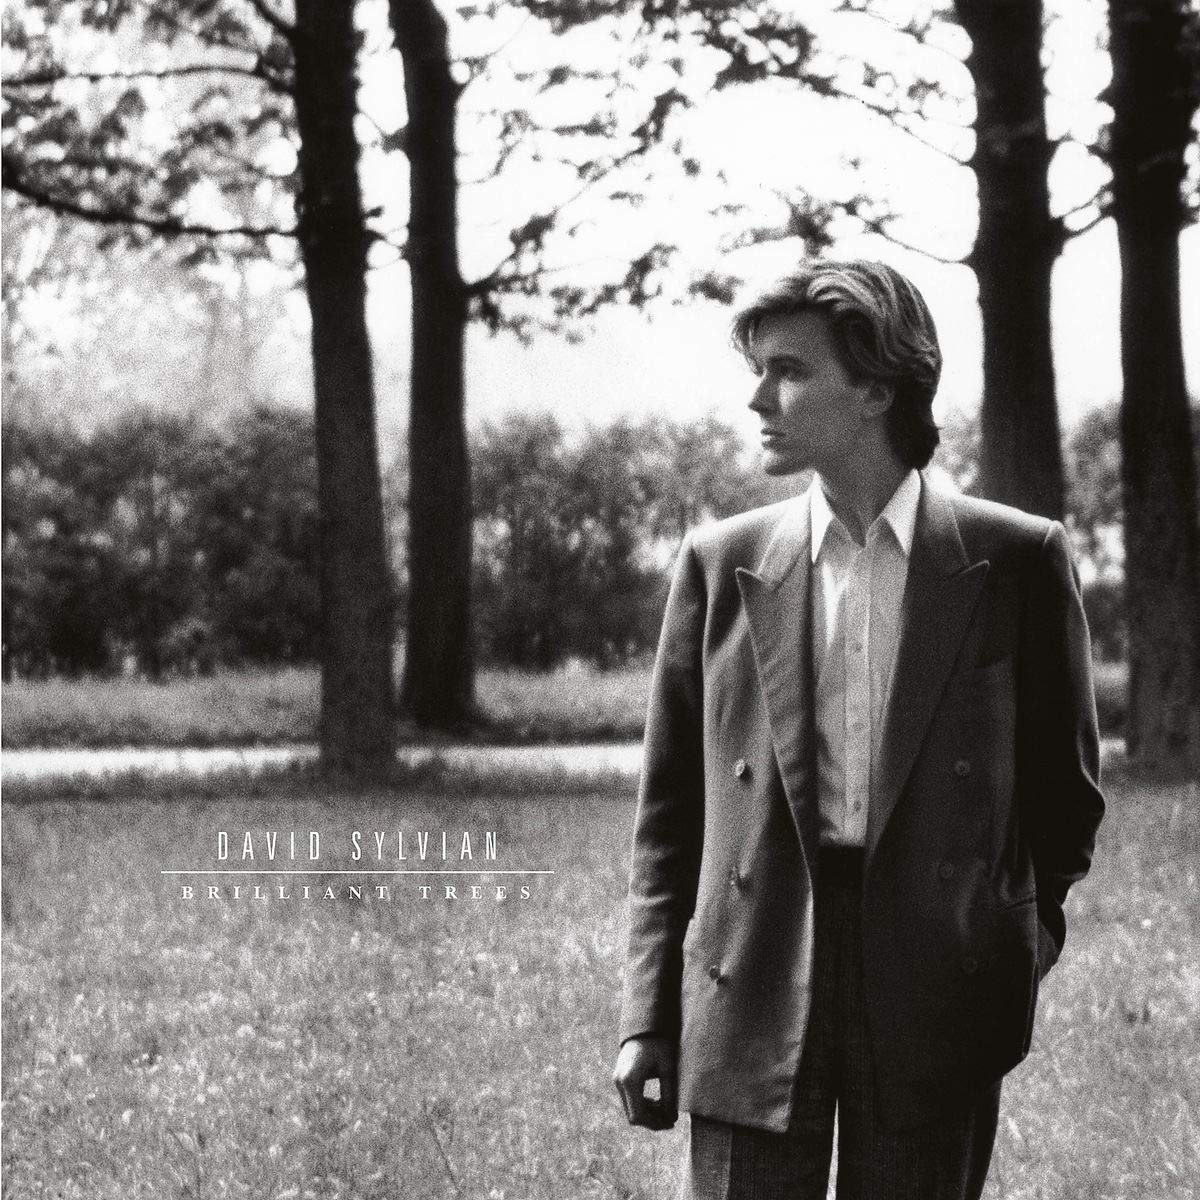 CD Shop - SYLVIAN DAVID BRILLIANT TREES